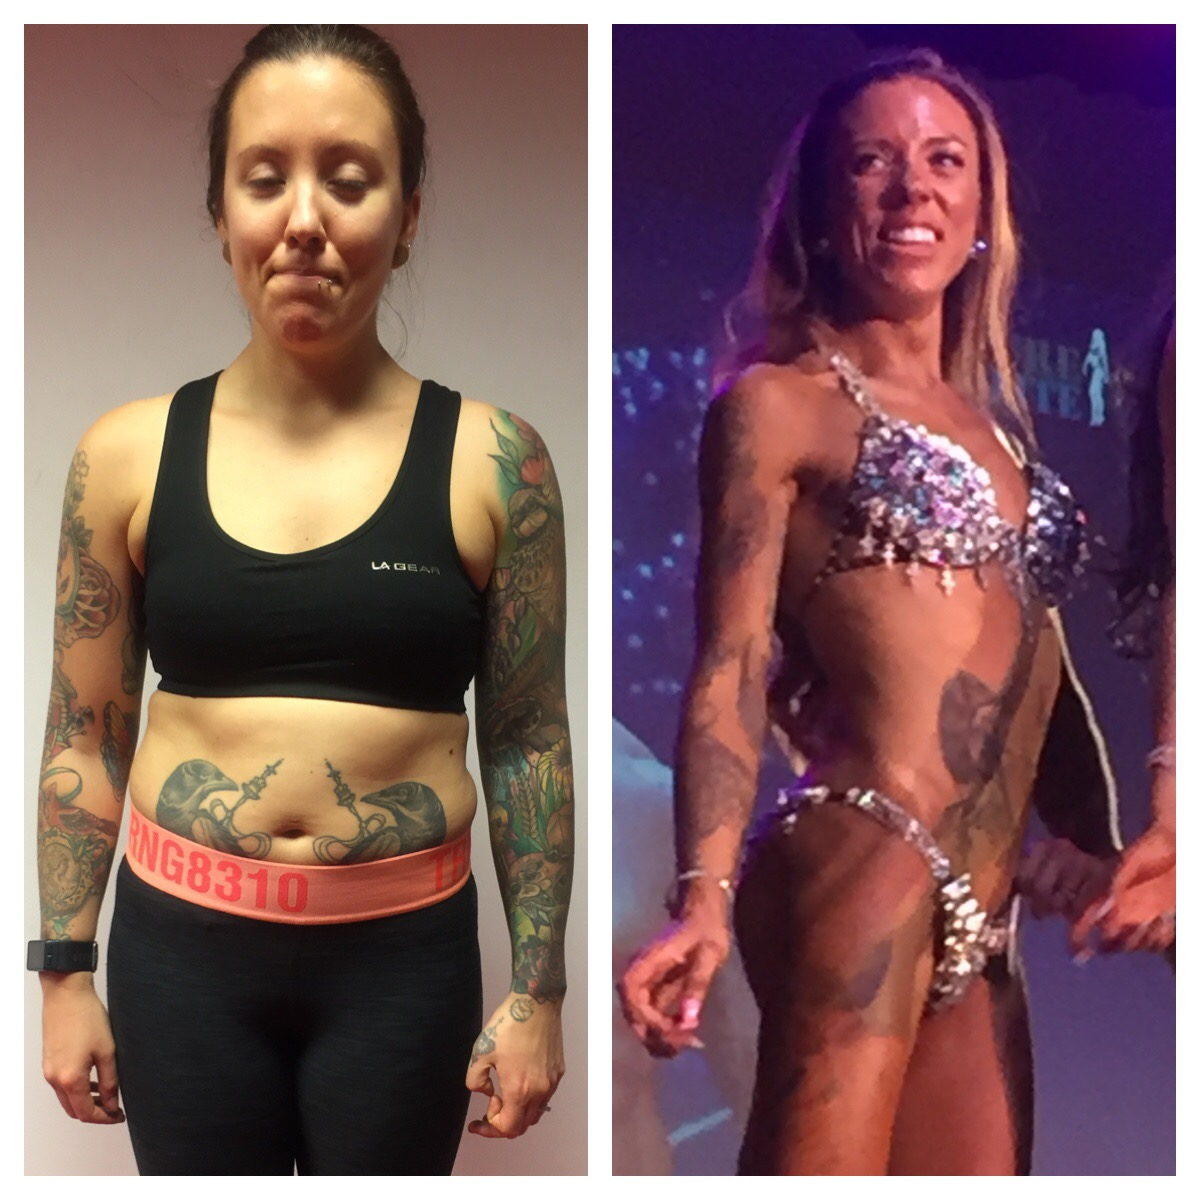 An image of Sharpbodies Personal Training Kayley's Transformation 2017 goes here.